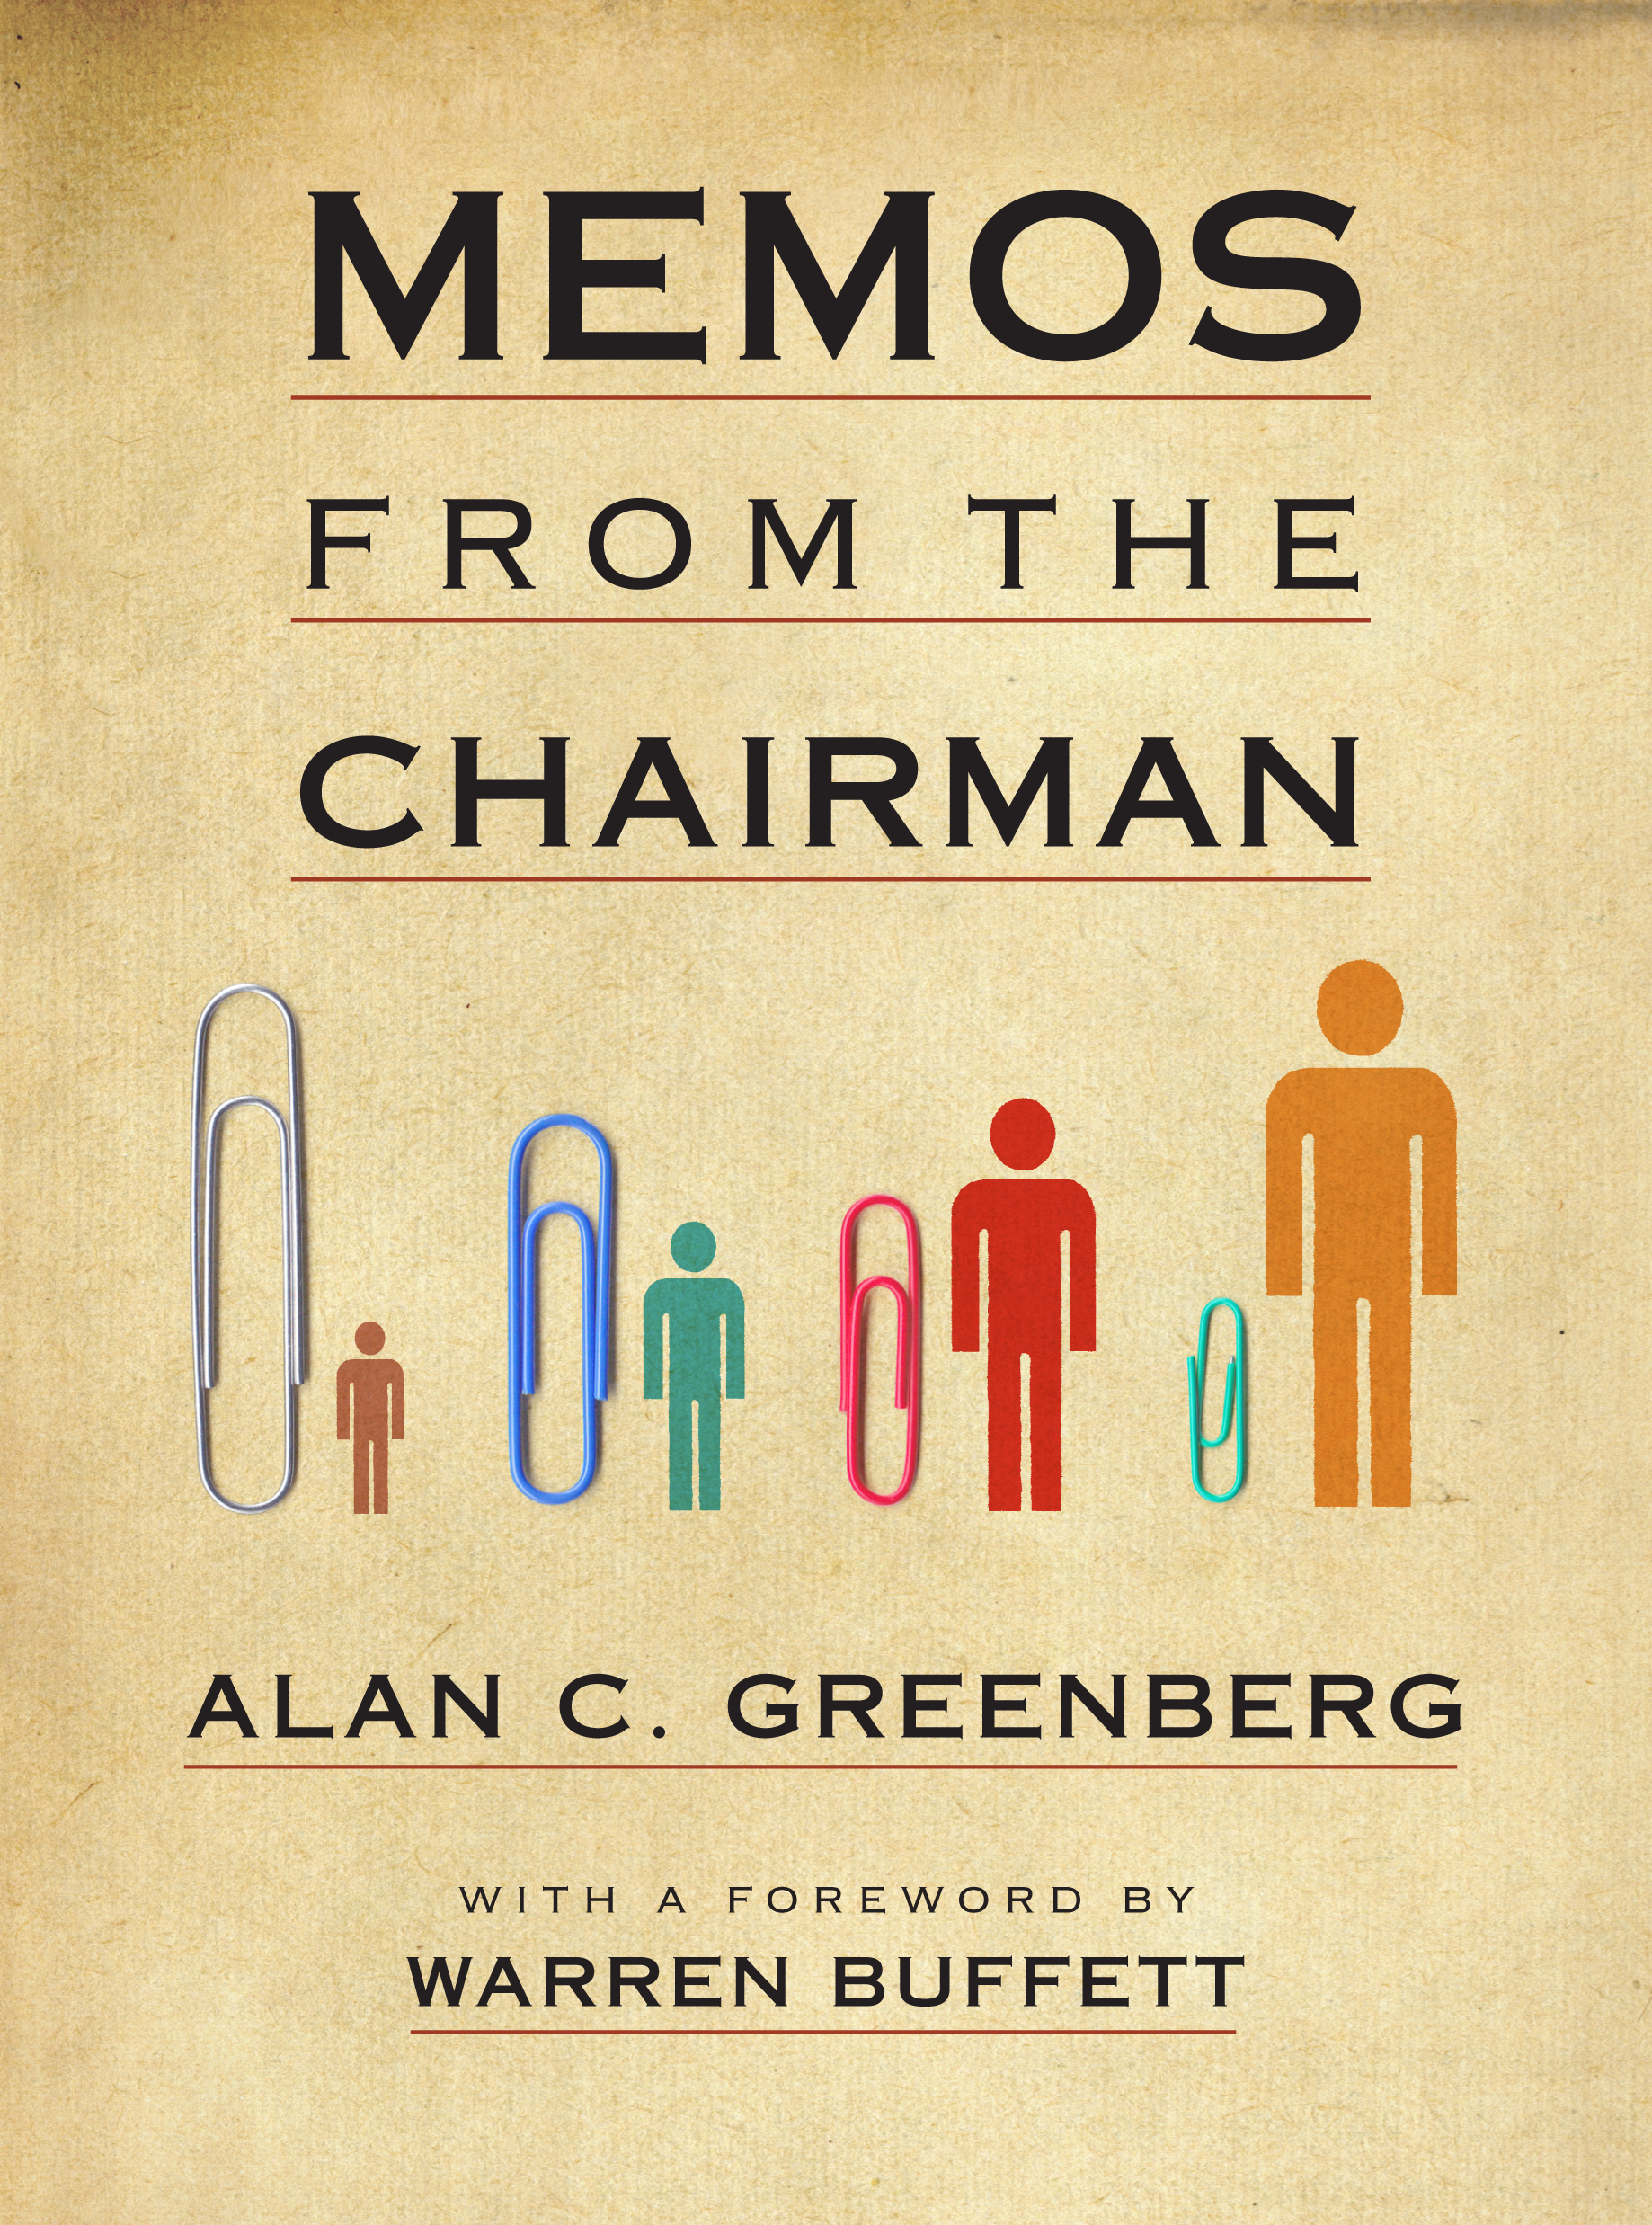 Download Ebook Memos from the Chairman by Alan C. Greenberg Pdf